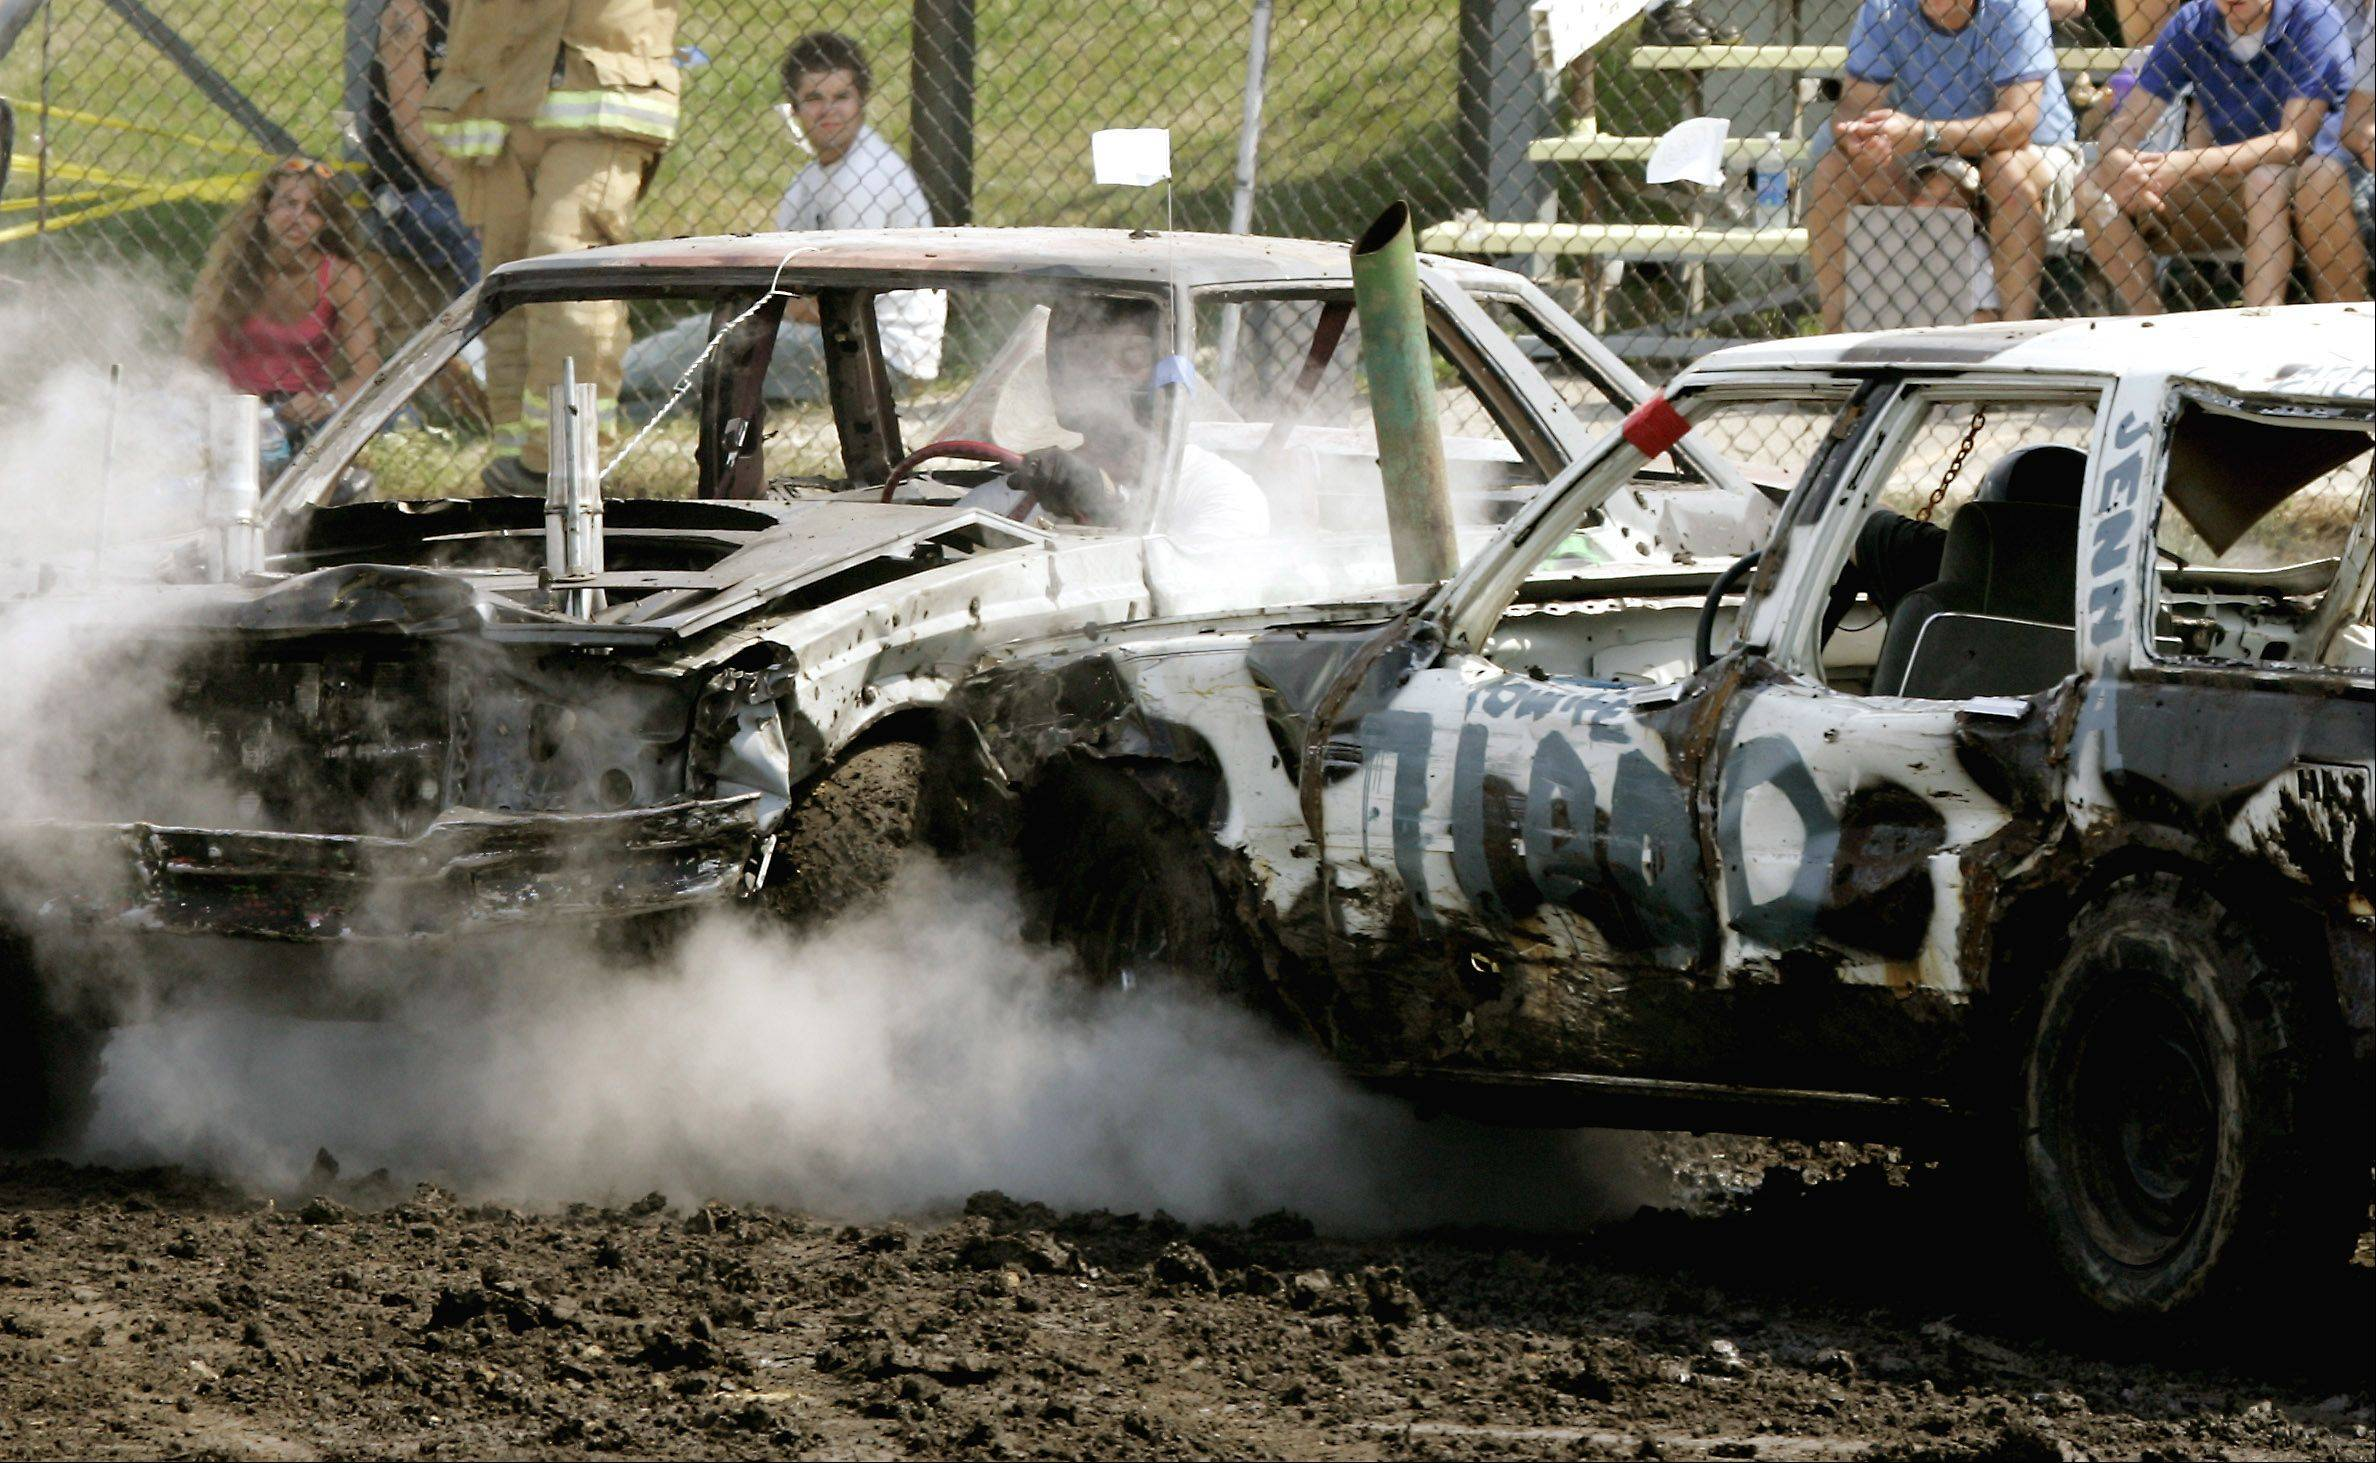 Demolition Derby always a smash hit at DuPage County Fair